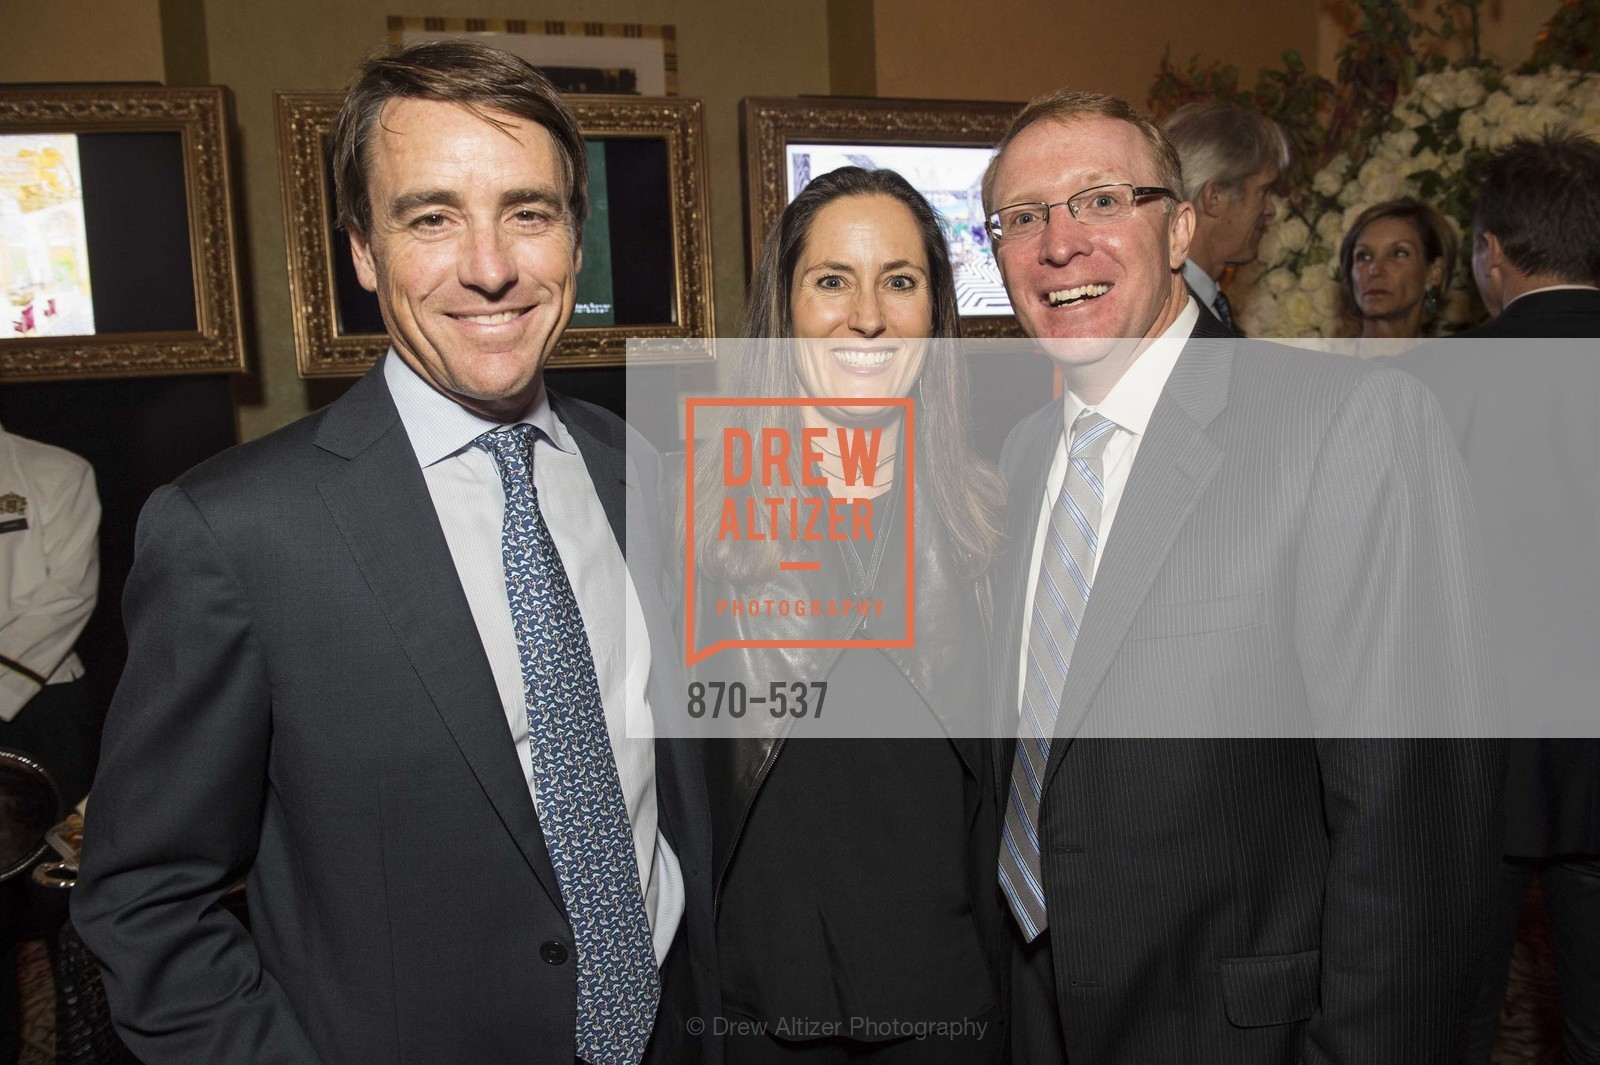 Louis Stervinou, Mary Stervinou, Paul Isaacson, TOP OF THE MARK'S 75TH Anniversary Party, US, November 6th, 2014,Drew Altizer, Drew Altizer Photography, full-service agency, private events, San Francisco photographer, photographer california